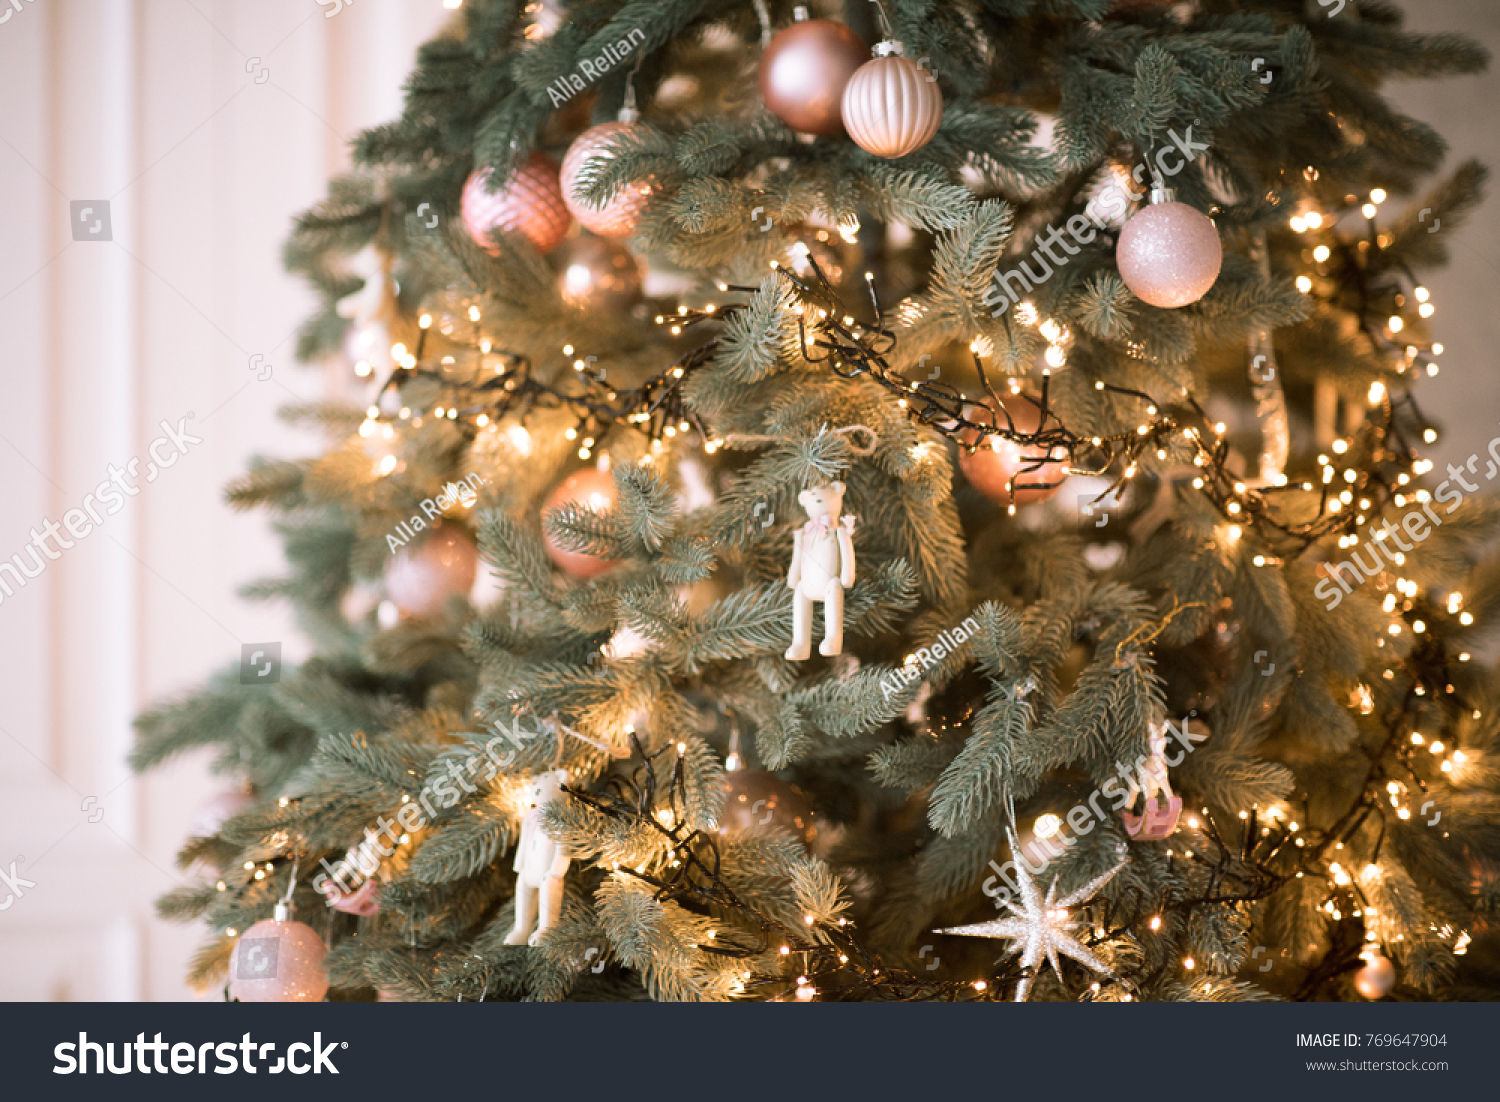 Christmas Tree Christmas Decorations Pink Gold Stock Photo Edit Now 769647904